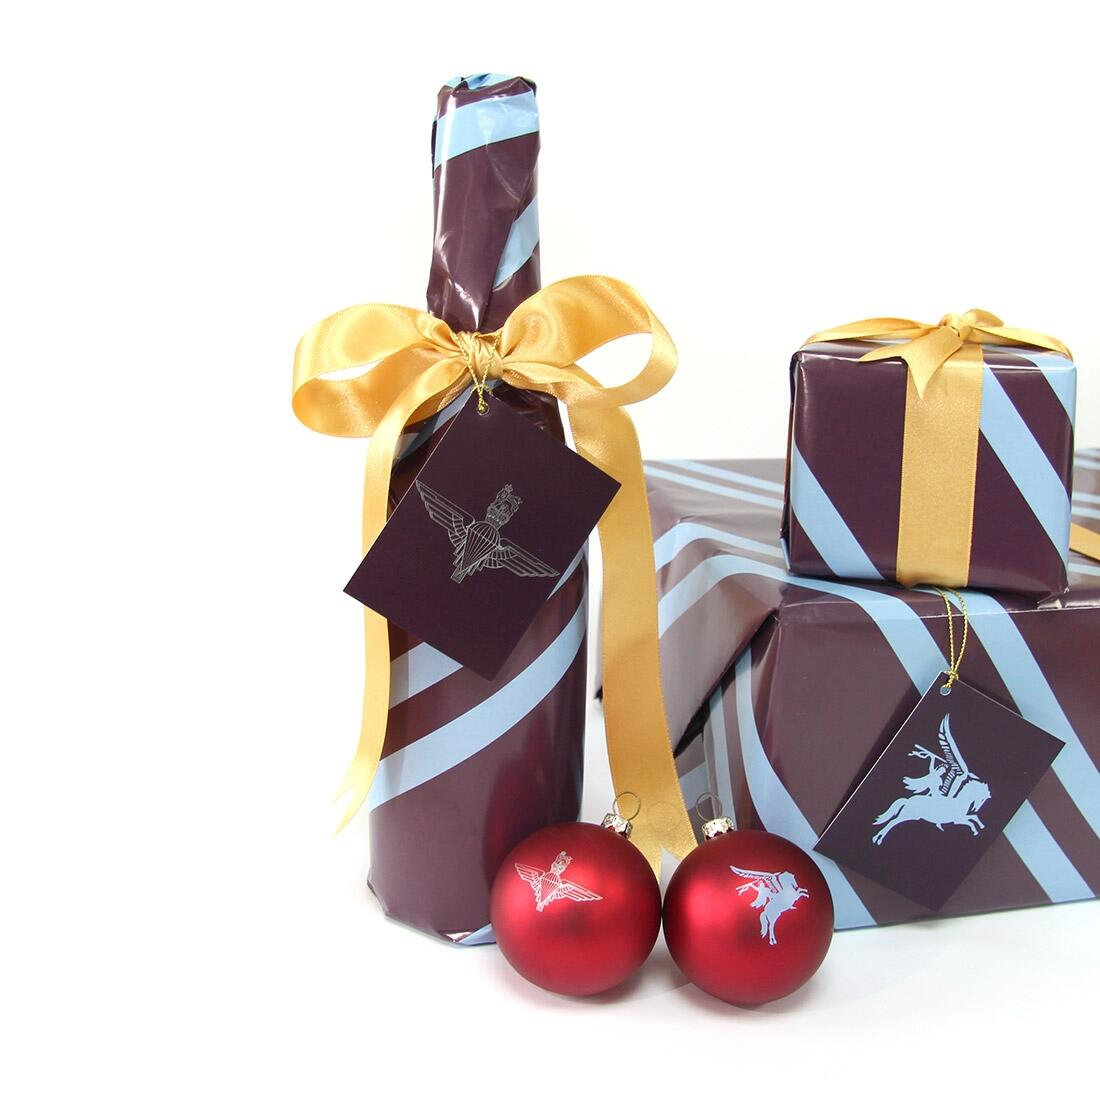 Wrapping Paper Set - 2 Large Sheets + 2 Gift Tags